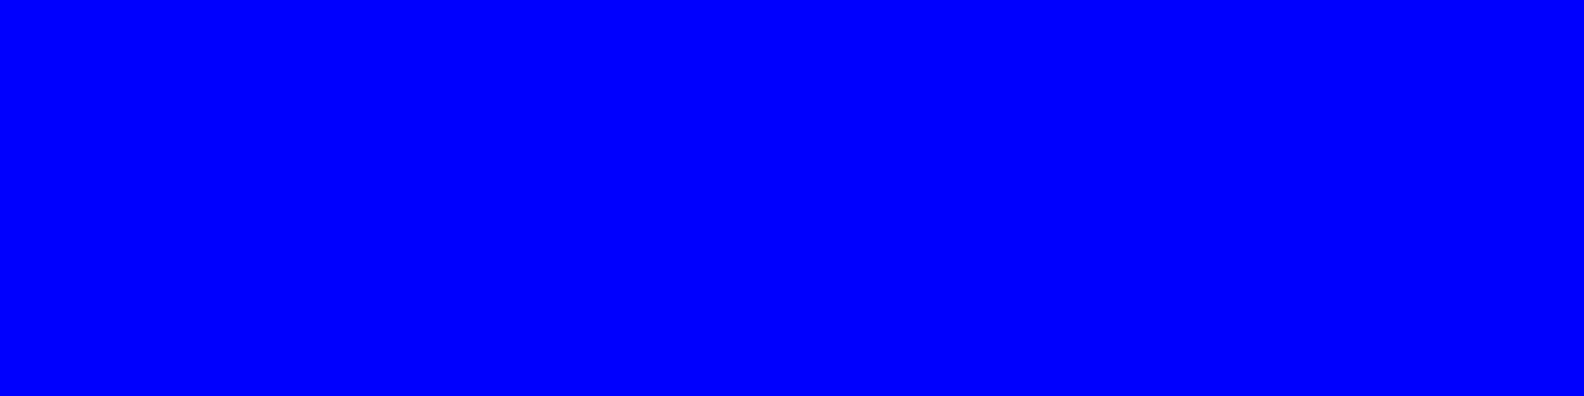 1584x396 Blue Solid Color Background